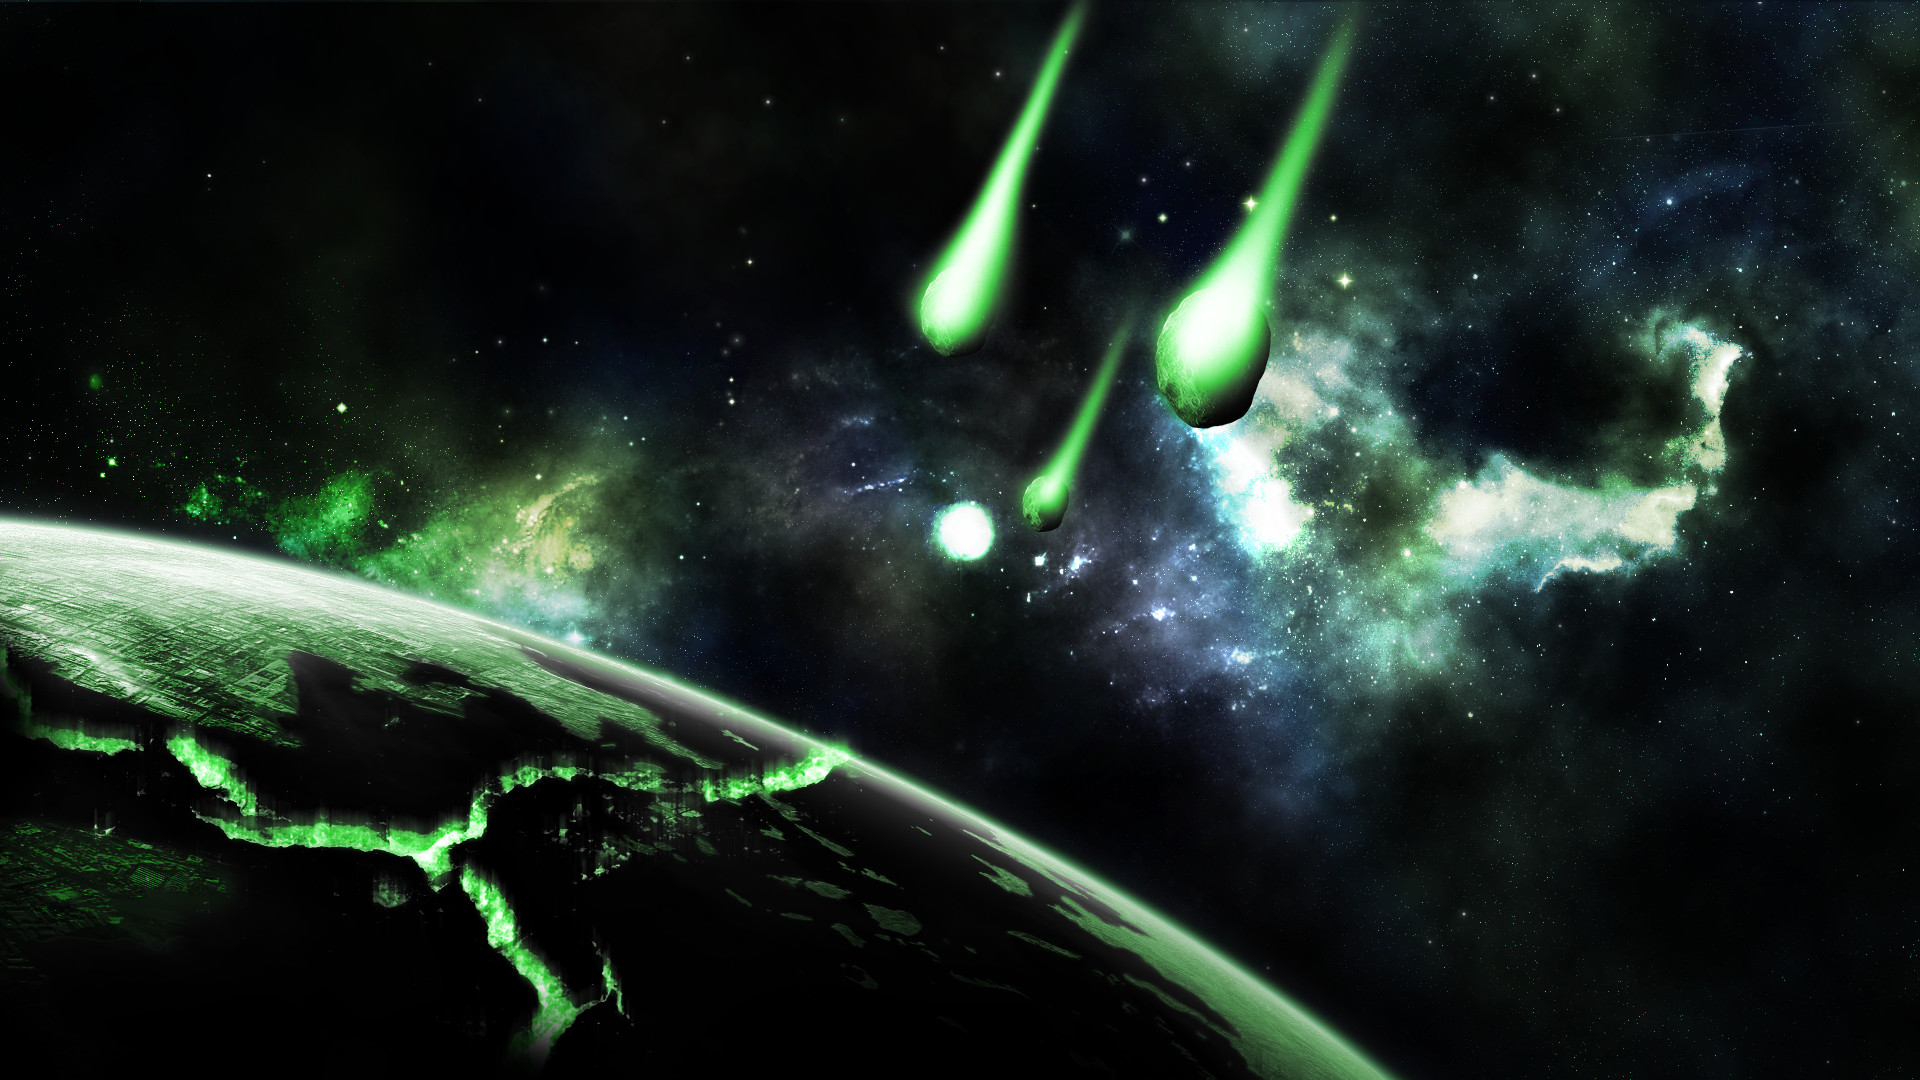 deep space wallpaper 1920x1080 66 images